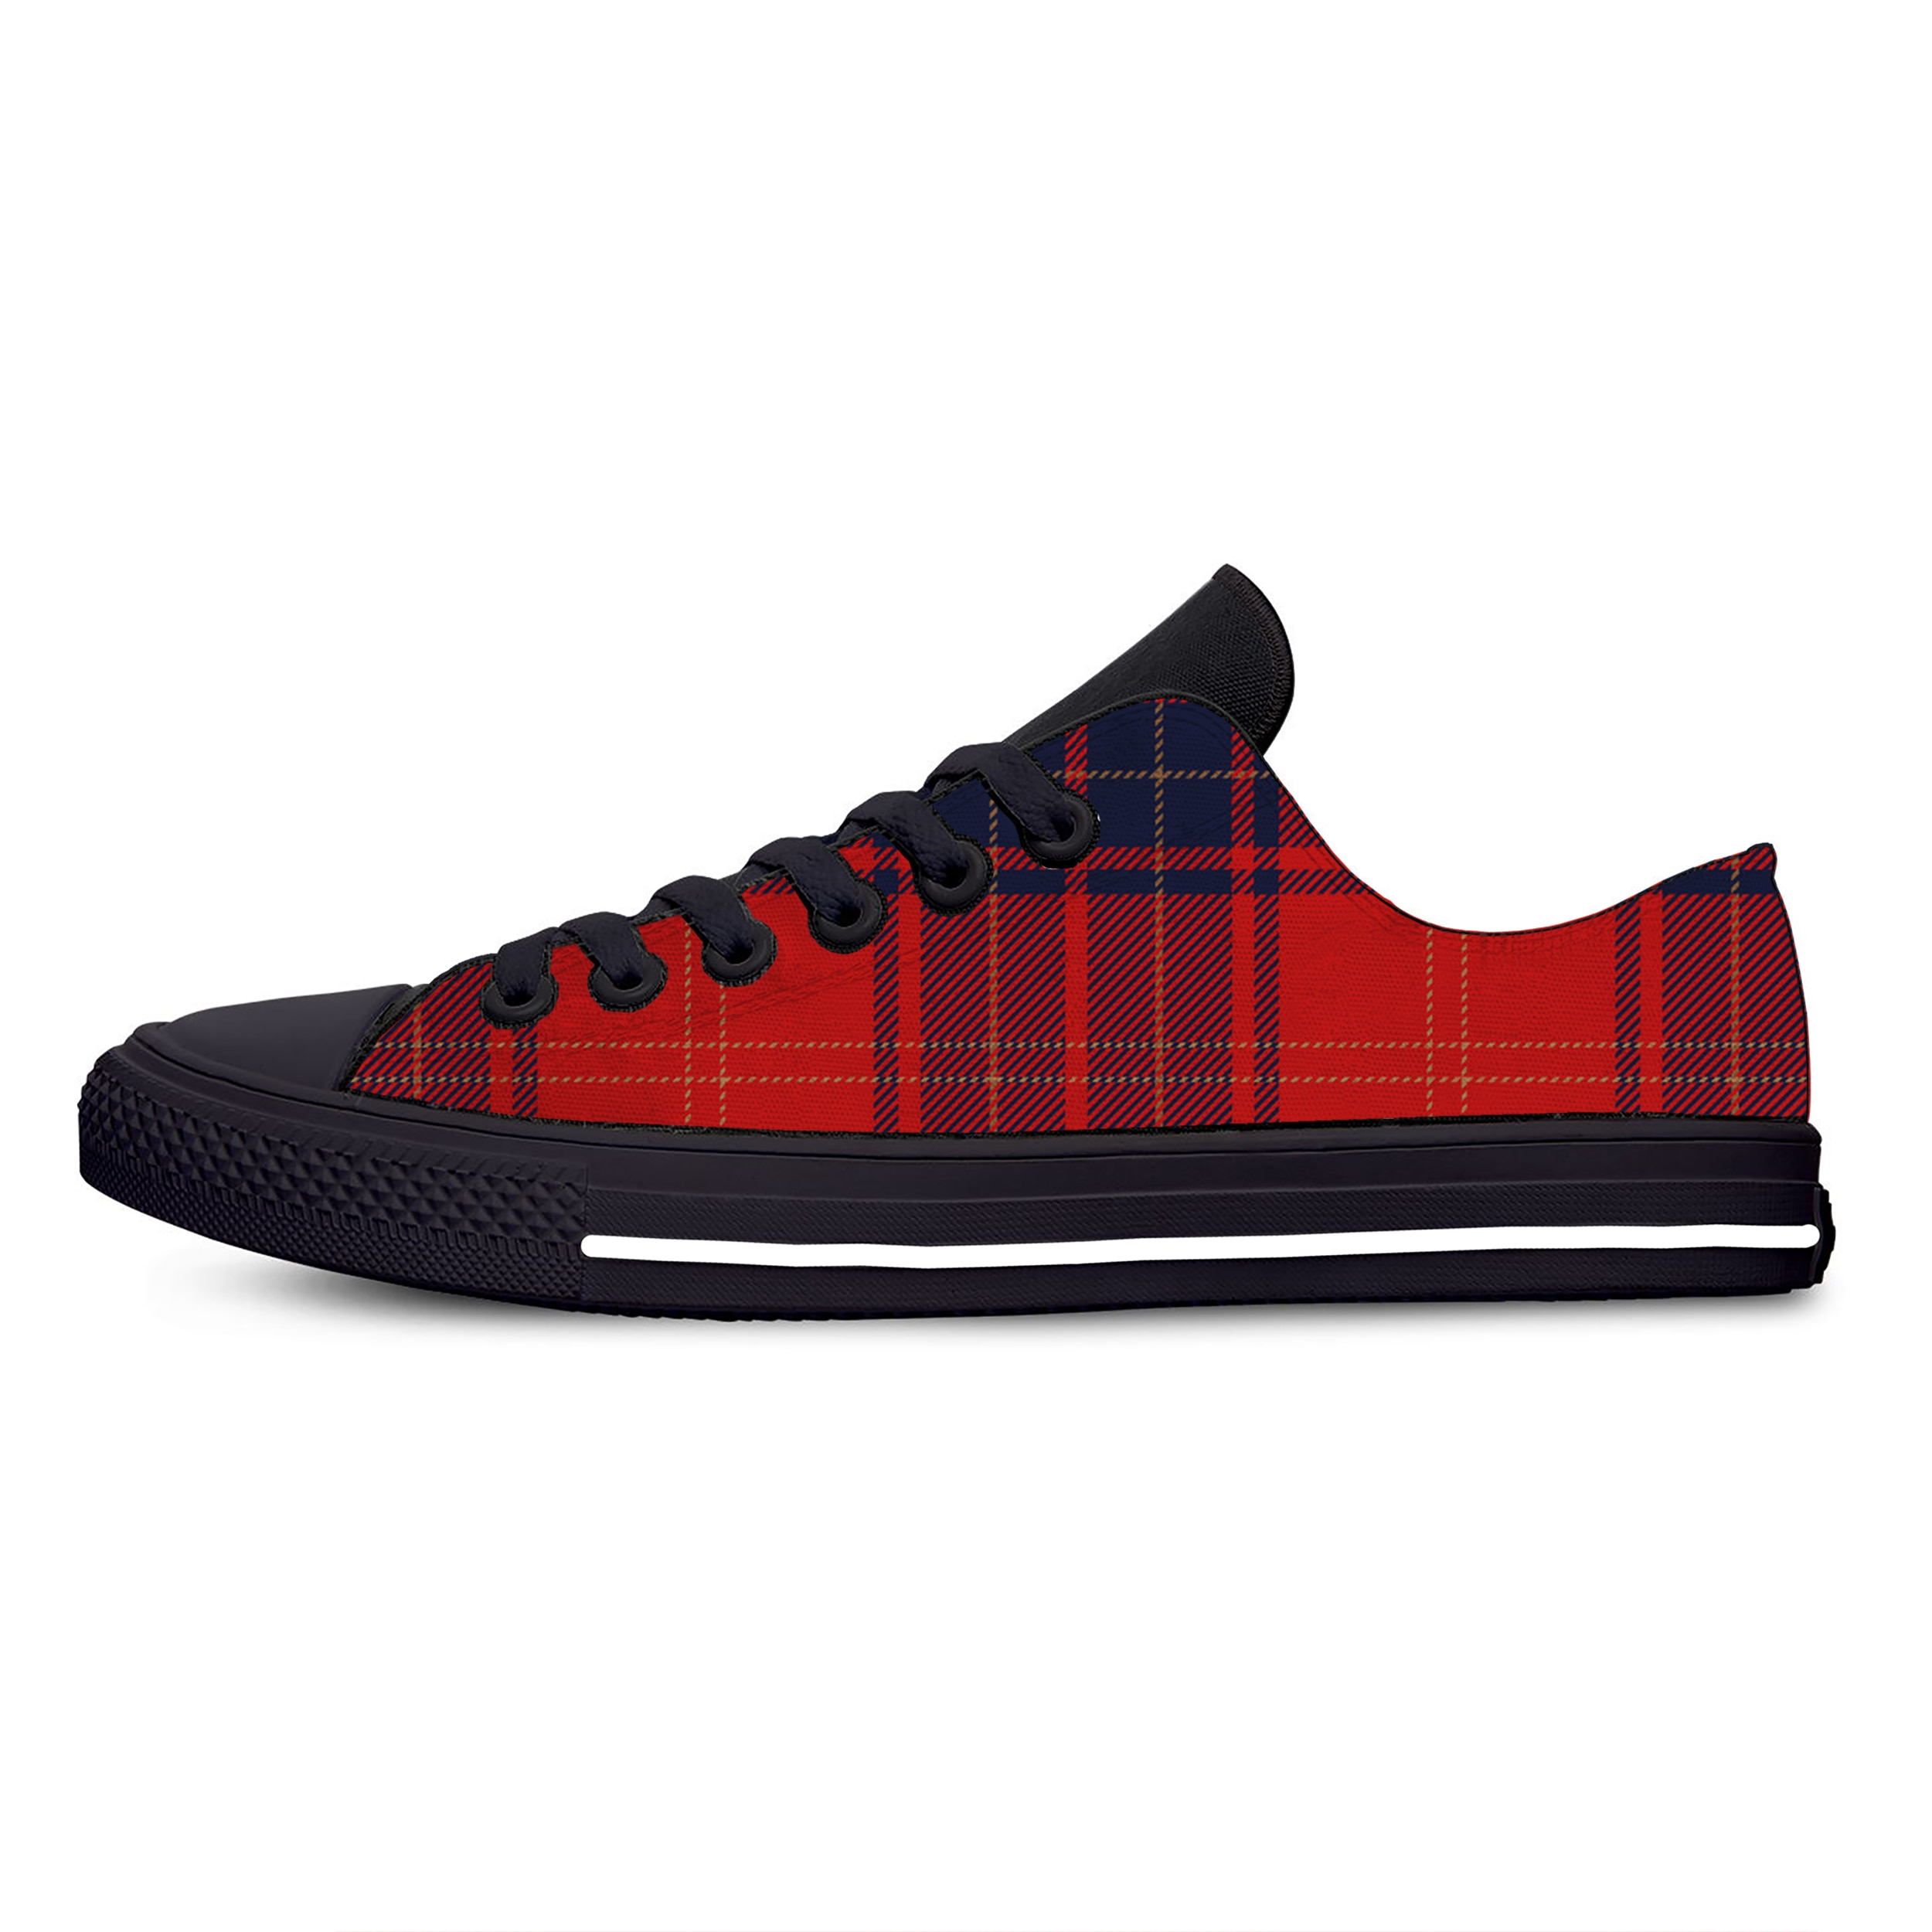 Tartan Plaid Scottish Pattern Hot Classic Fashion Casual Canvas Shoes Low Top Lightweight Breathable 3D Print Men women Sneakers